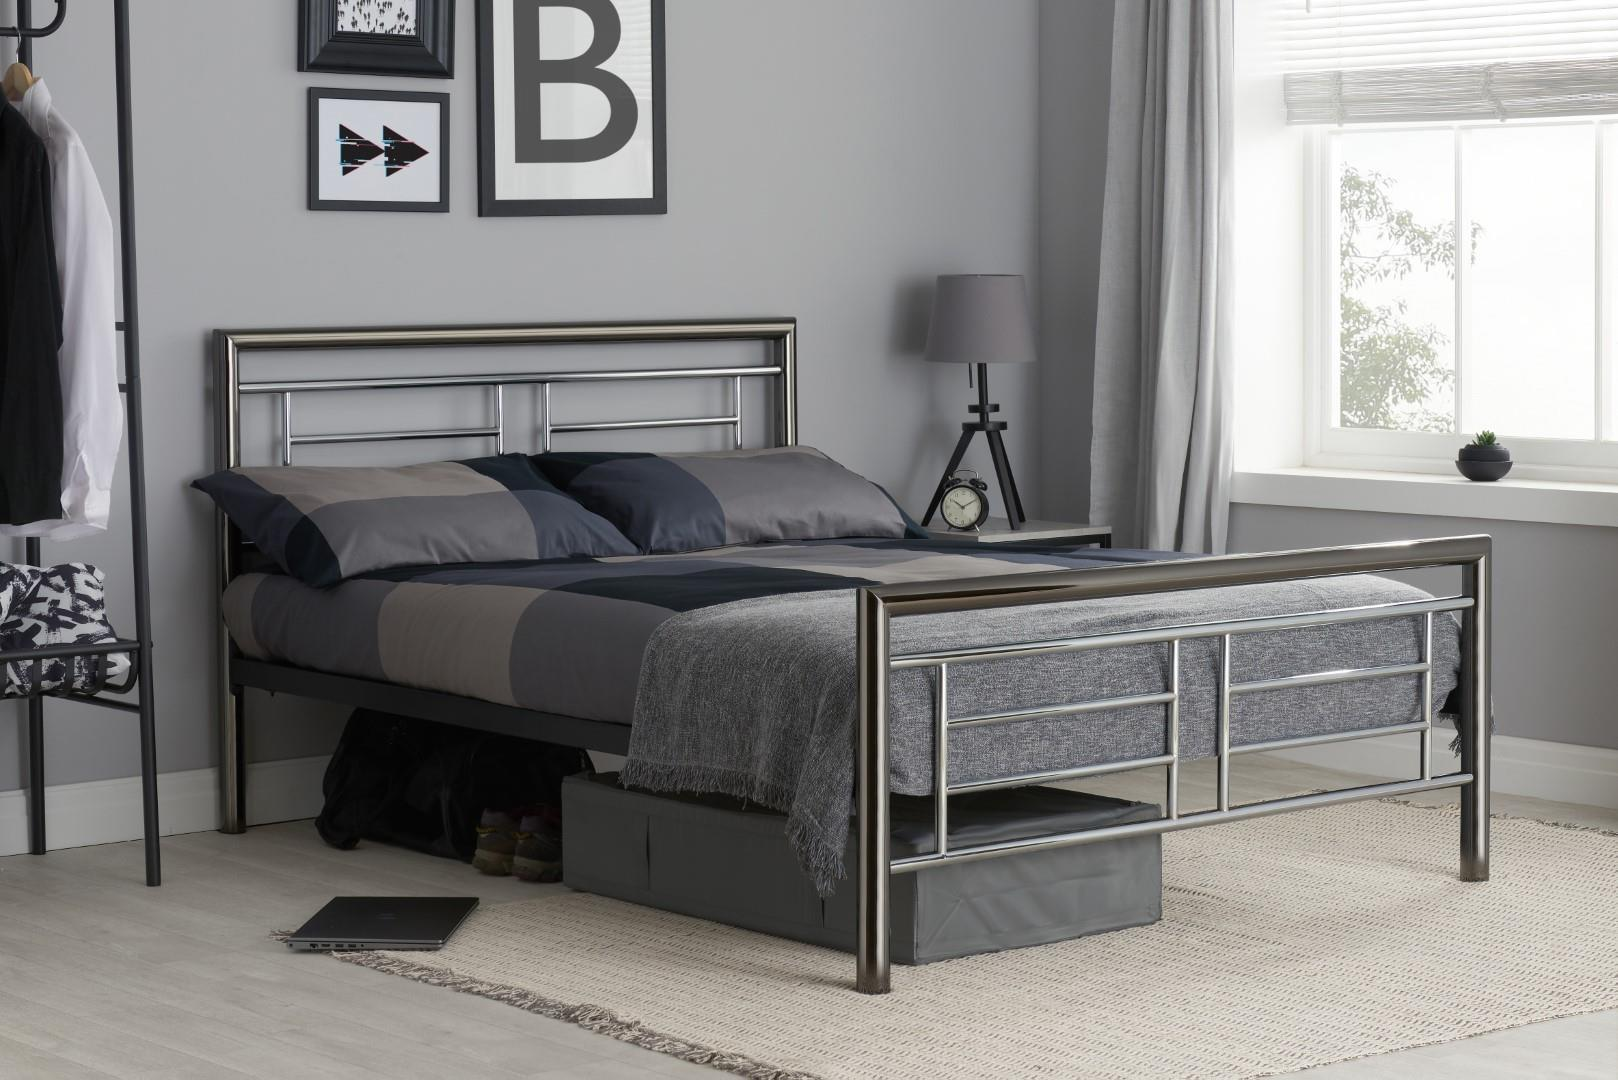 Birlea Montana Chrome & Black Nickel 135cm 4FT6 Double Metal Bed Frame Bedstead